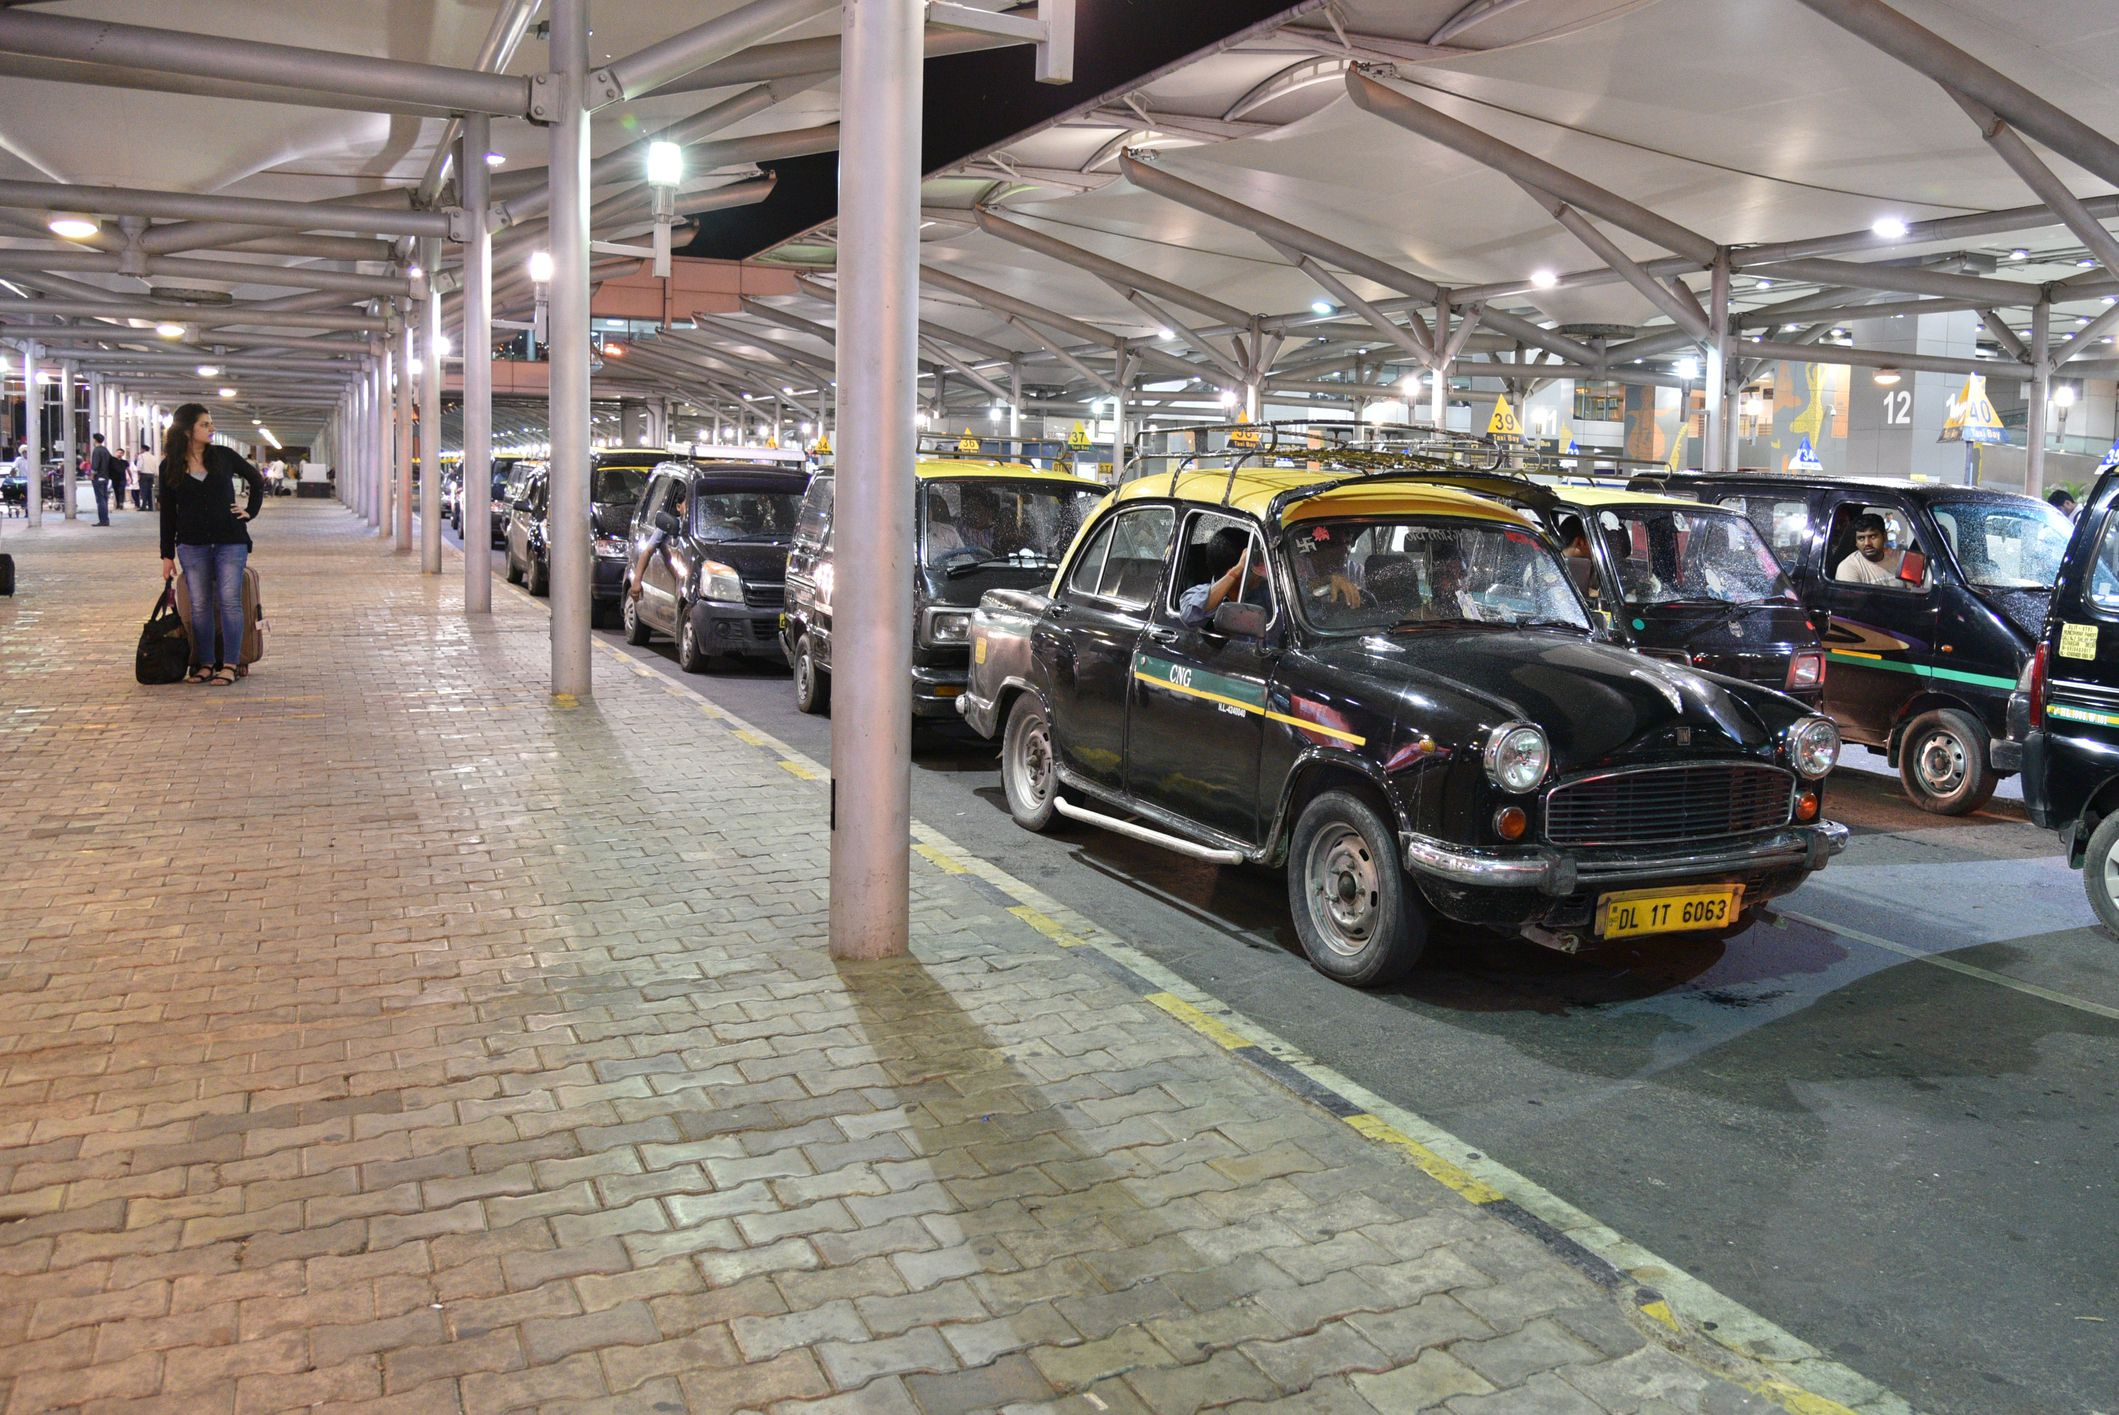 Delhi Airport Transfers From The To Your Hotel Gallery For Car Sound System Diagram Chateau Pinterest